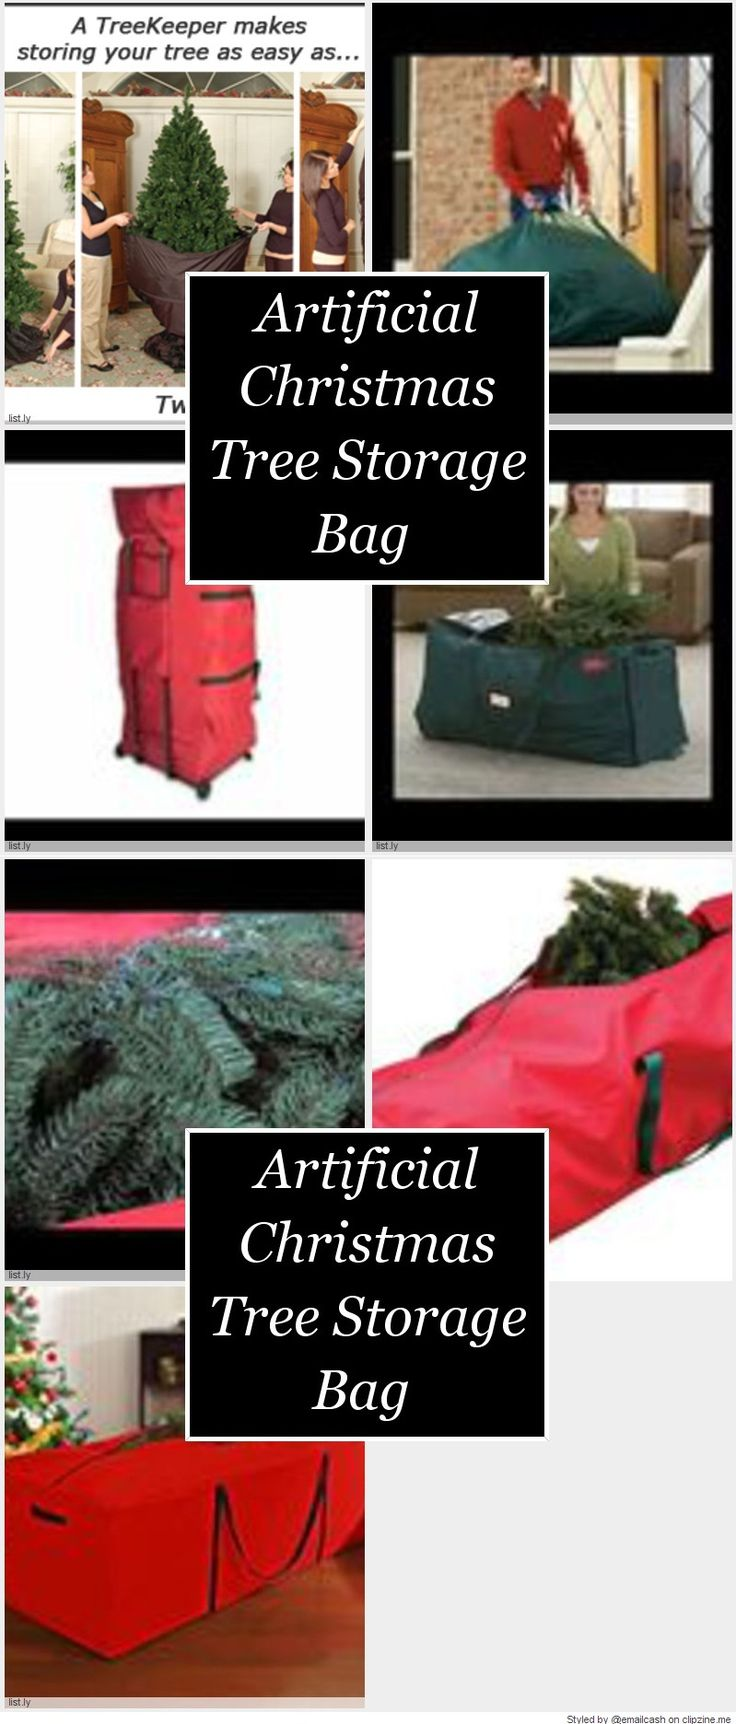 Artificial Christmas Tree Storage Bag - You can find Christmas Tree Storage Bags almost anywhere. You can buy cheap bags and you can buy expensive ones. The most important thing to remember is that there are usually sharp ends and edges on your Christmas tree so make sure you get one that doesn't puncture easily.